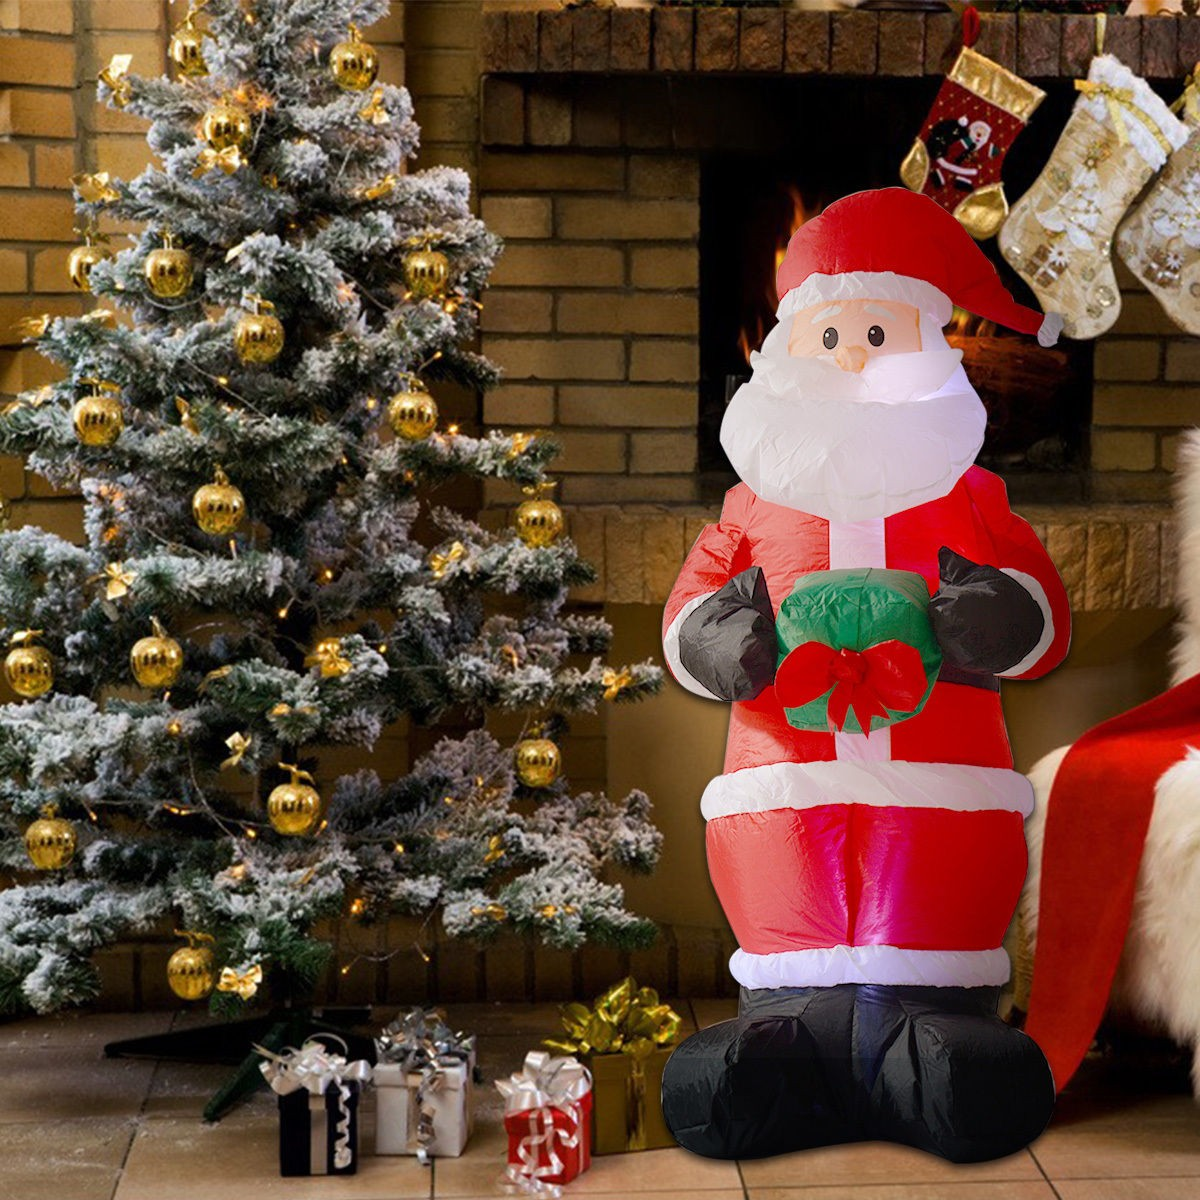 Santa Claus Lawn Decorations